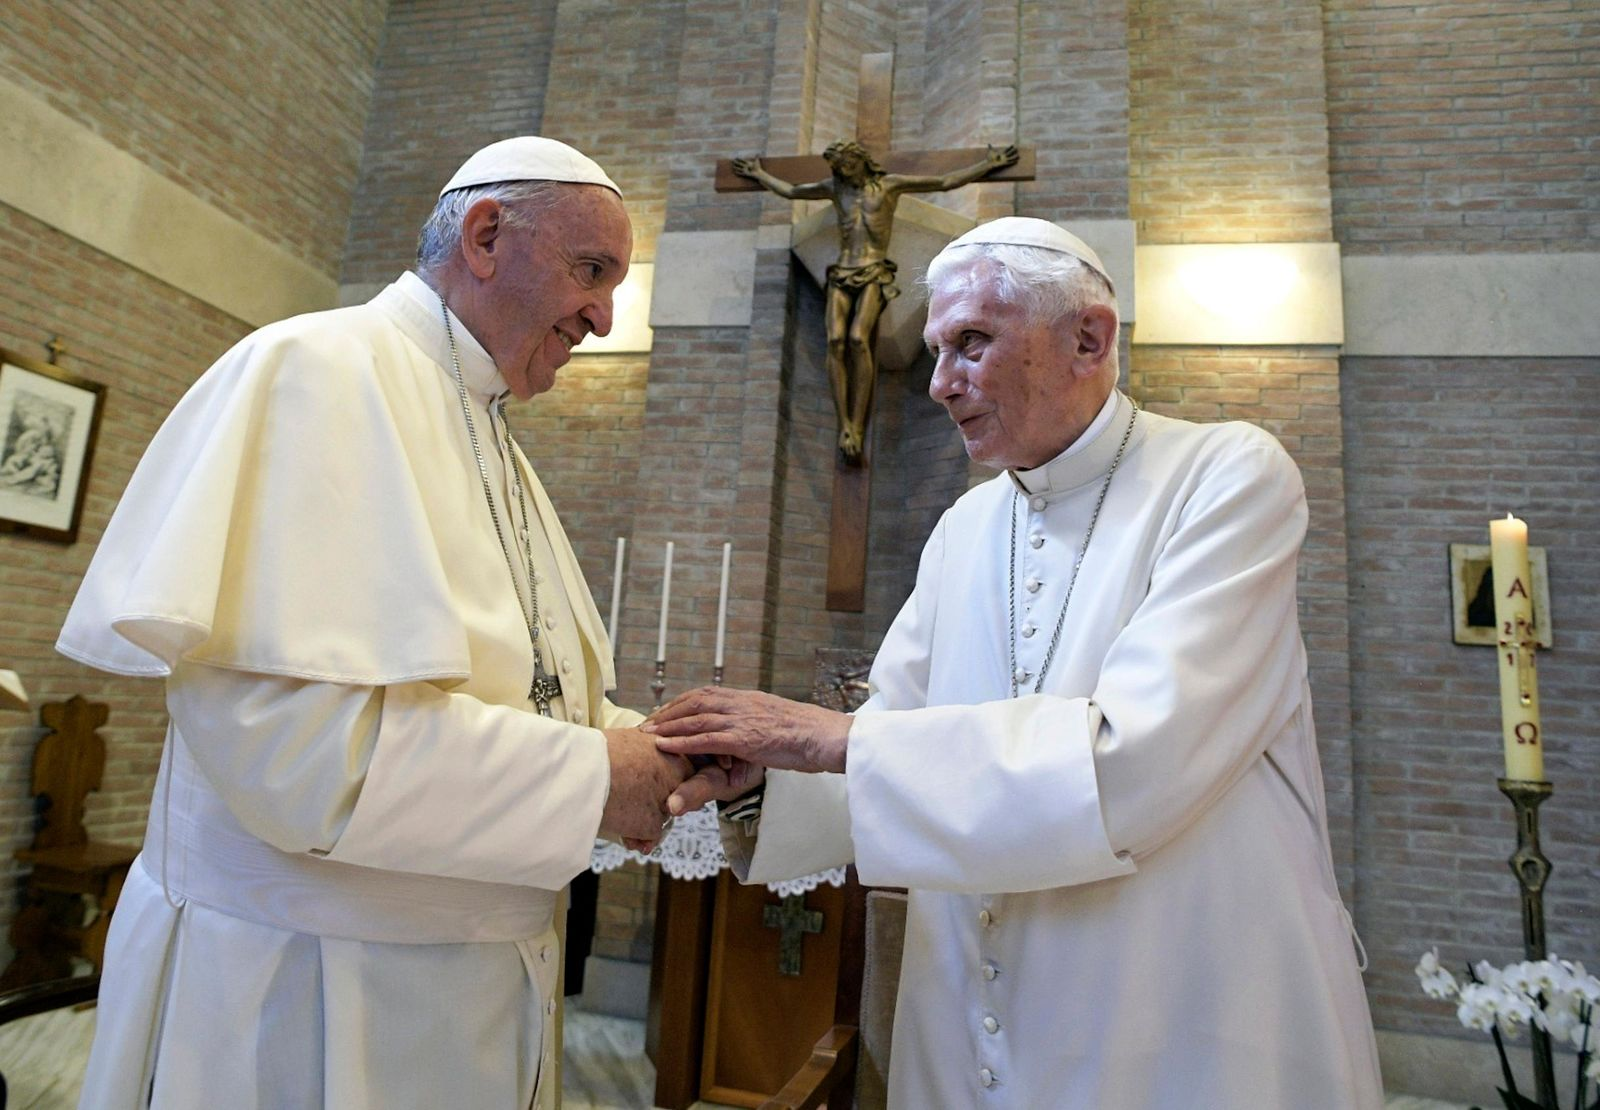 FILE - In this June 28, 2017, file photo, Pope Francis, left, and Pope Benedict XVI, meet each other on the occasion of the elevation of five new cardinals at the Vatican.{ } (L'Osservatore Romano/Pool photo via AP, File)